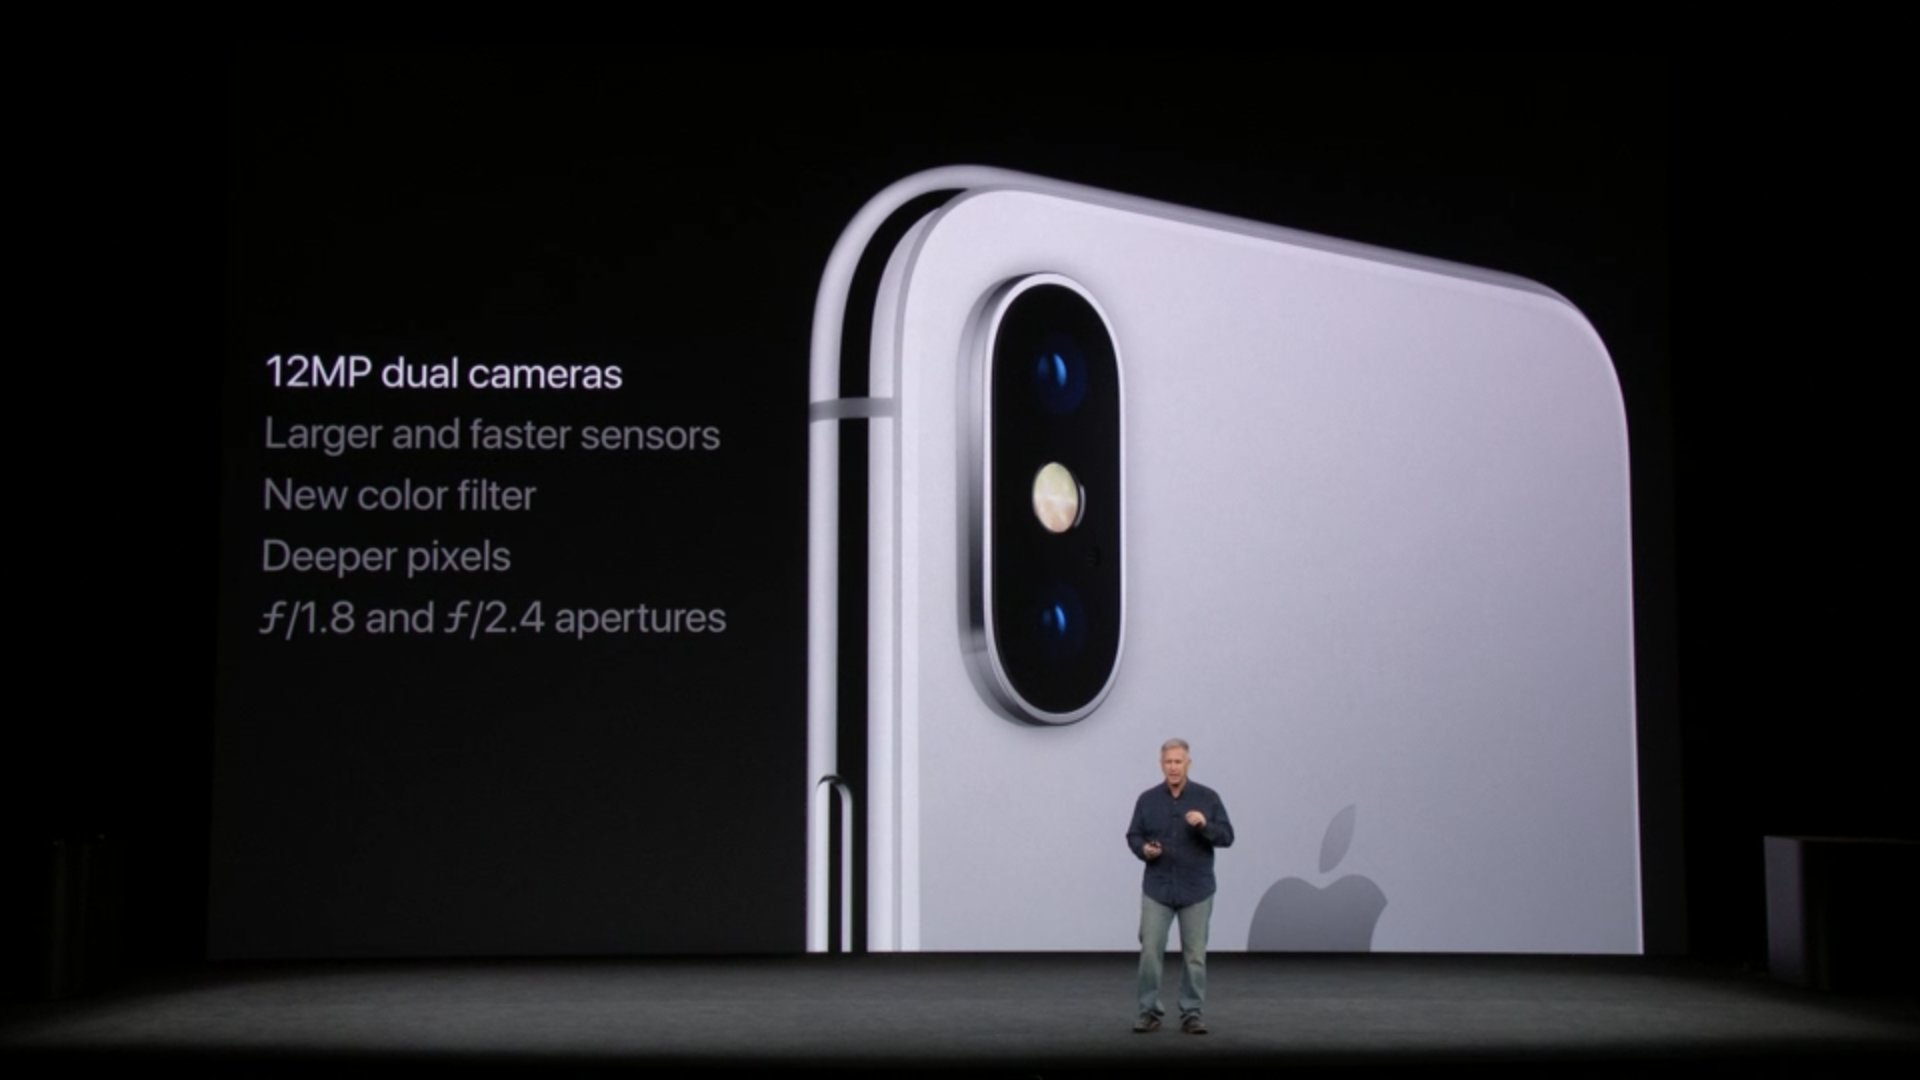 Details on the new camera in the iPhone X. #AppleEvent https://t.co/FdTwebZcPj